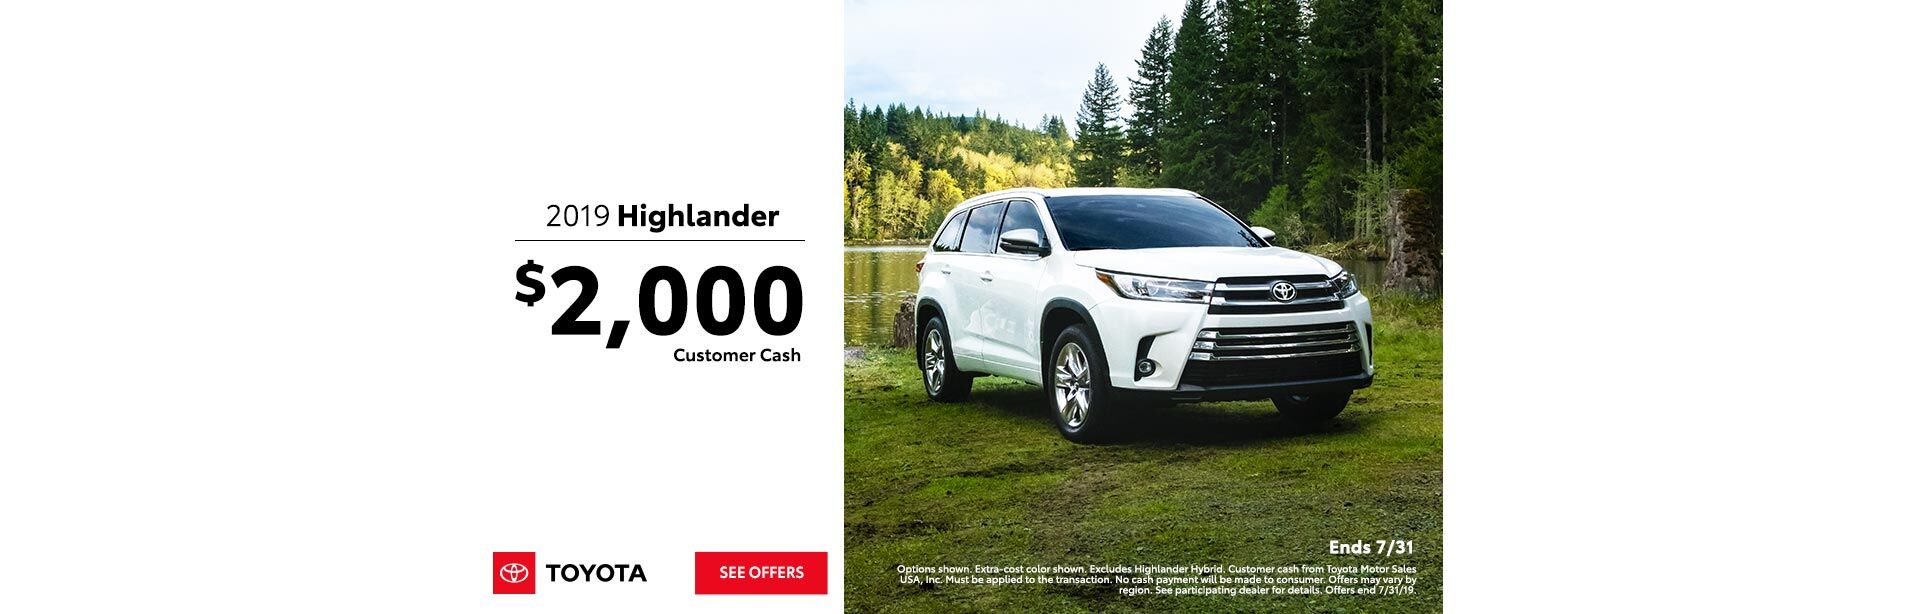 Highlander Offer